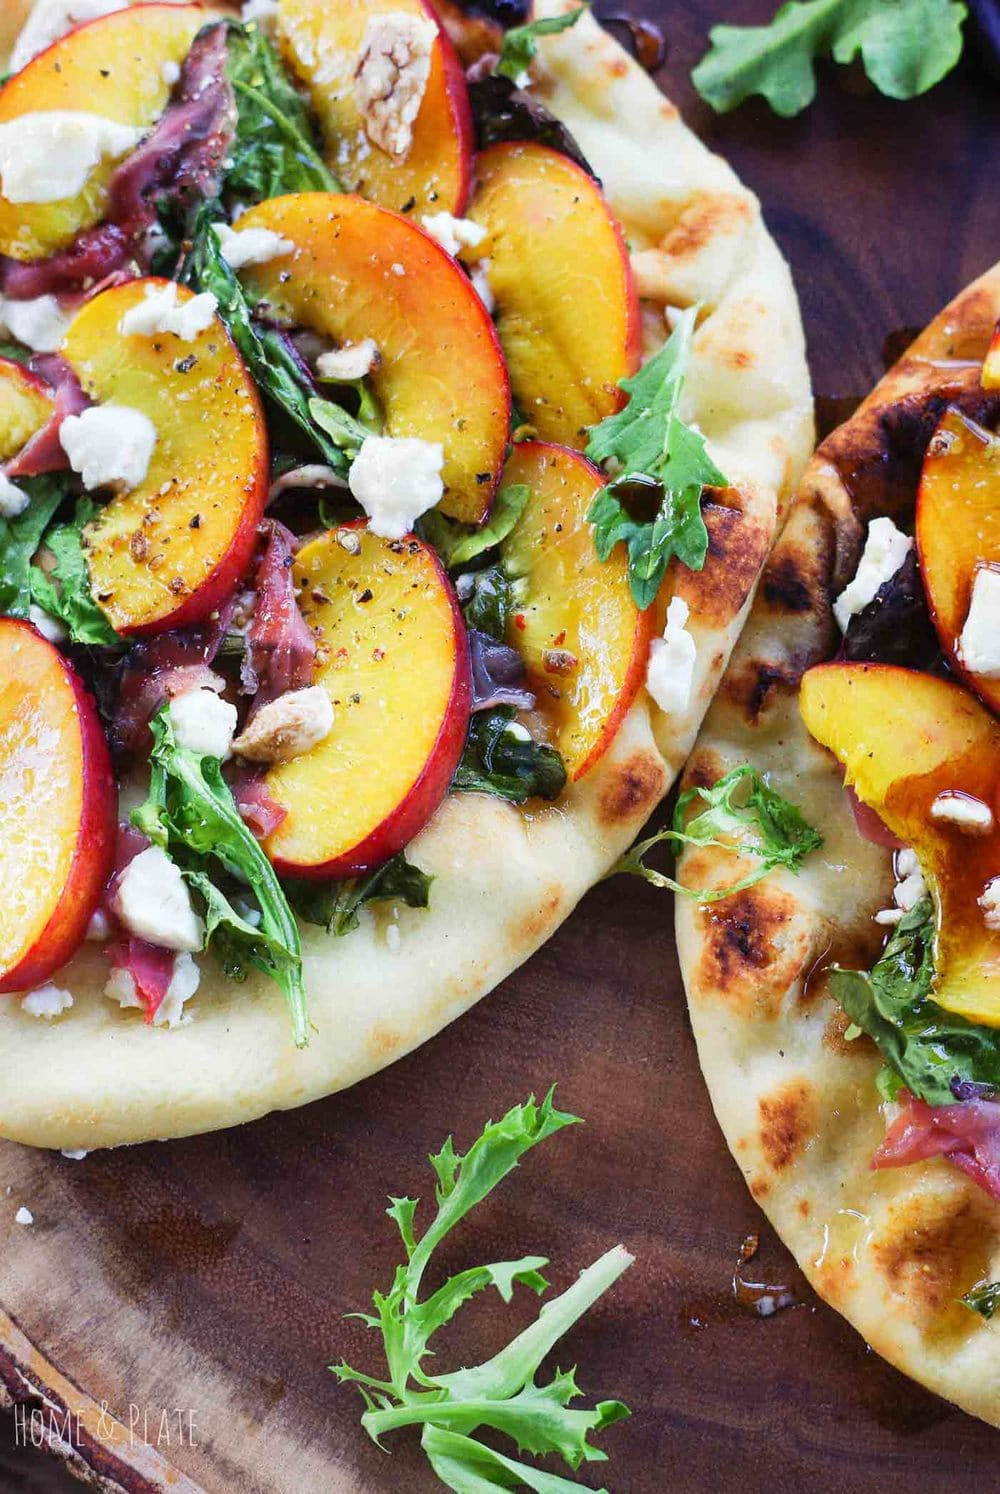 Grilled Nectarine Prosciutto Pizza | www.homeandplate.com | Sweet juicy nectarines paired with salty prosciutto and creamy goat cheese turns an ordinary pizza into something phenomenal.